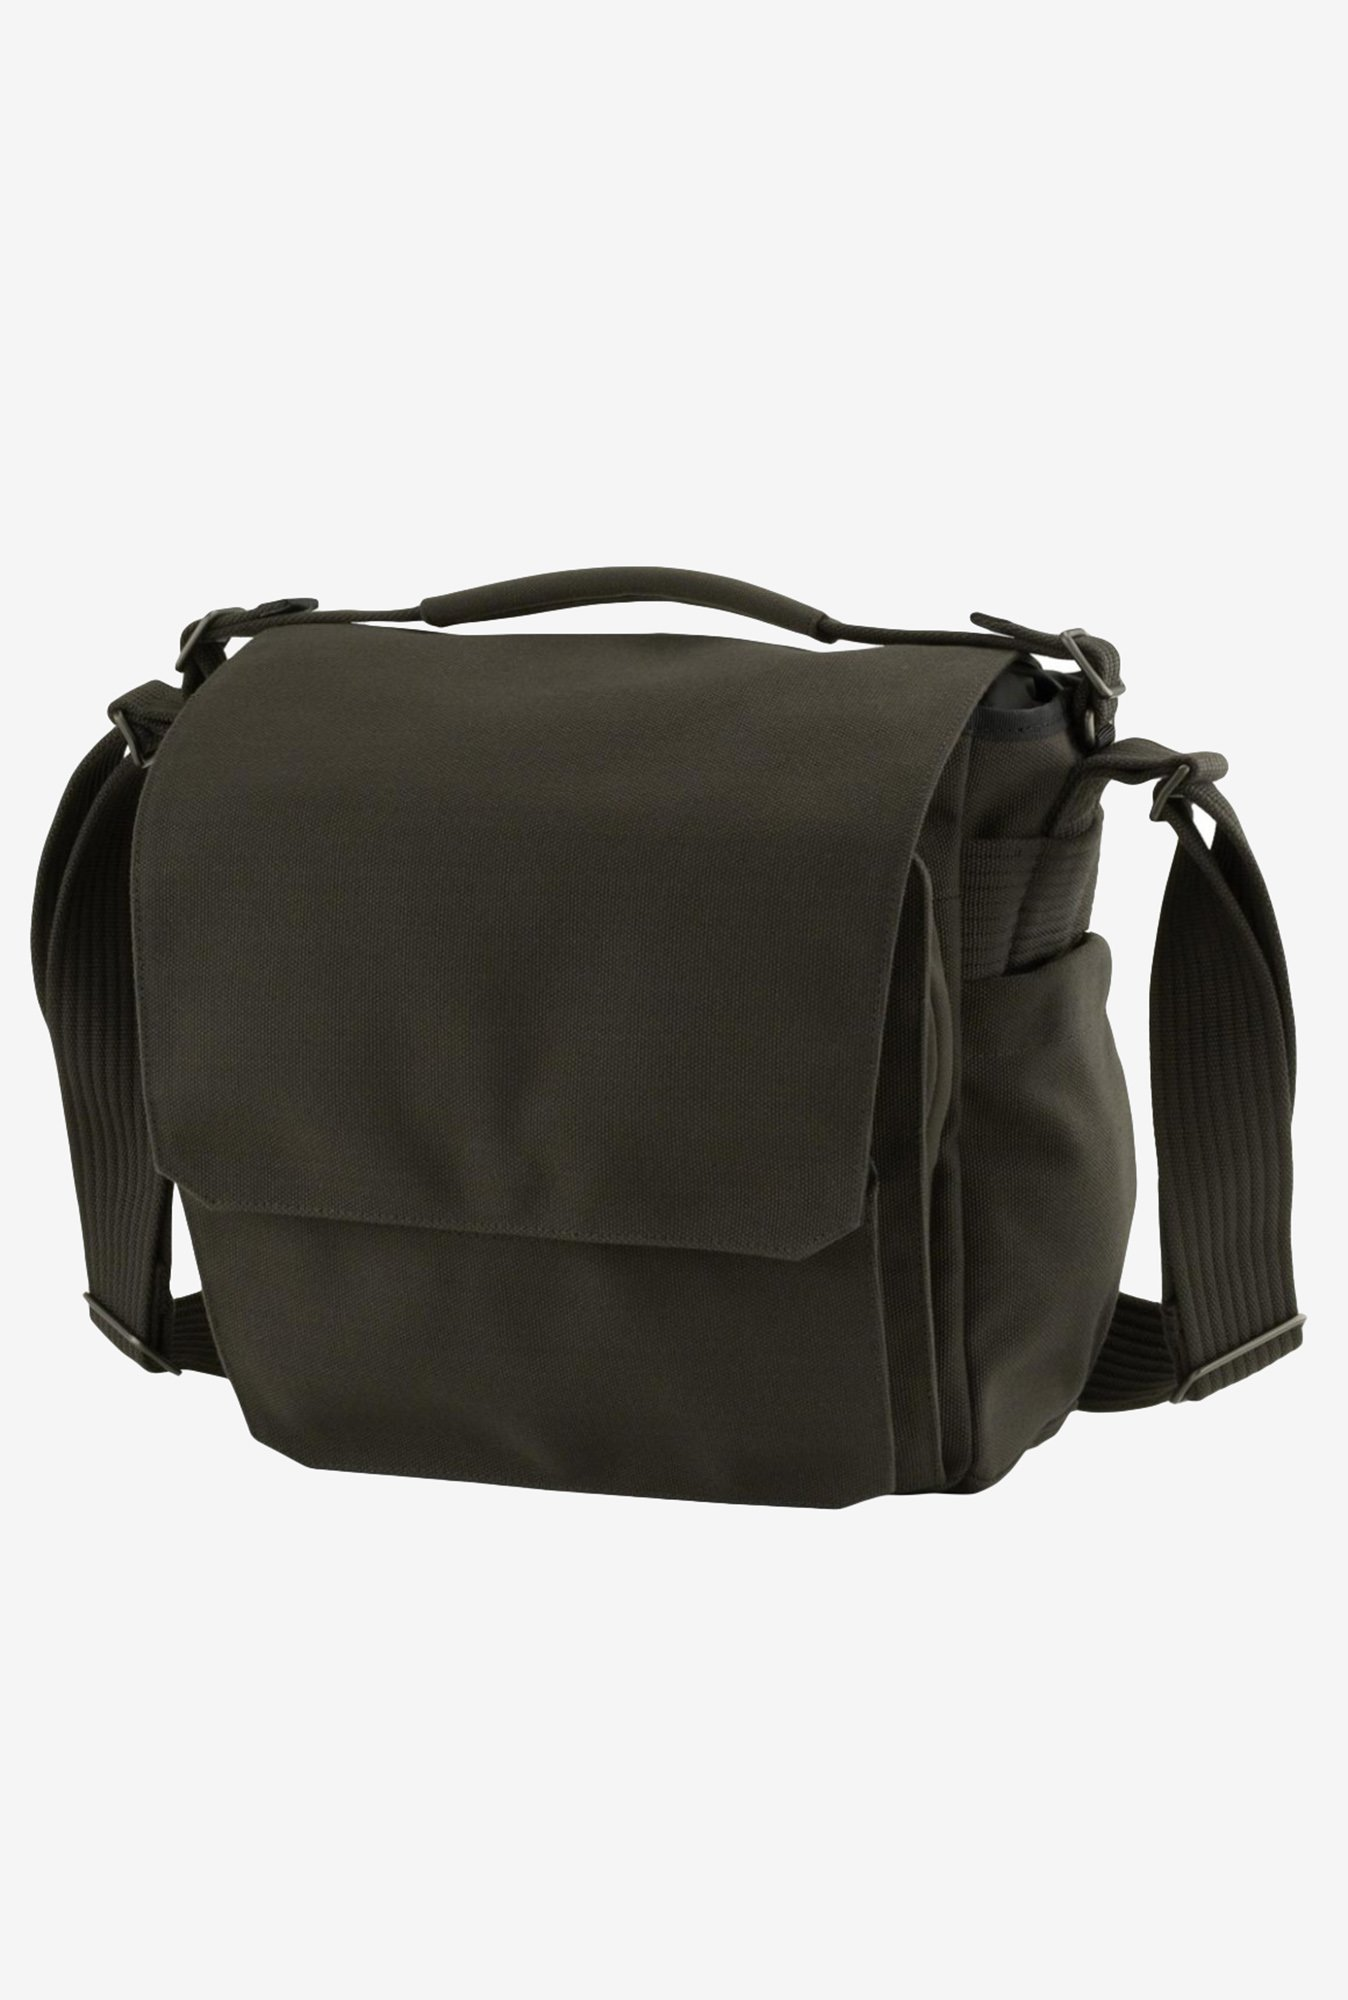 Lowepro Pro Messenger 180AW Shoulder Bag Slate Grey